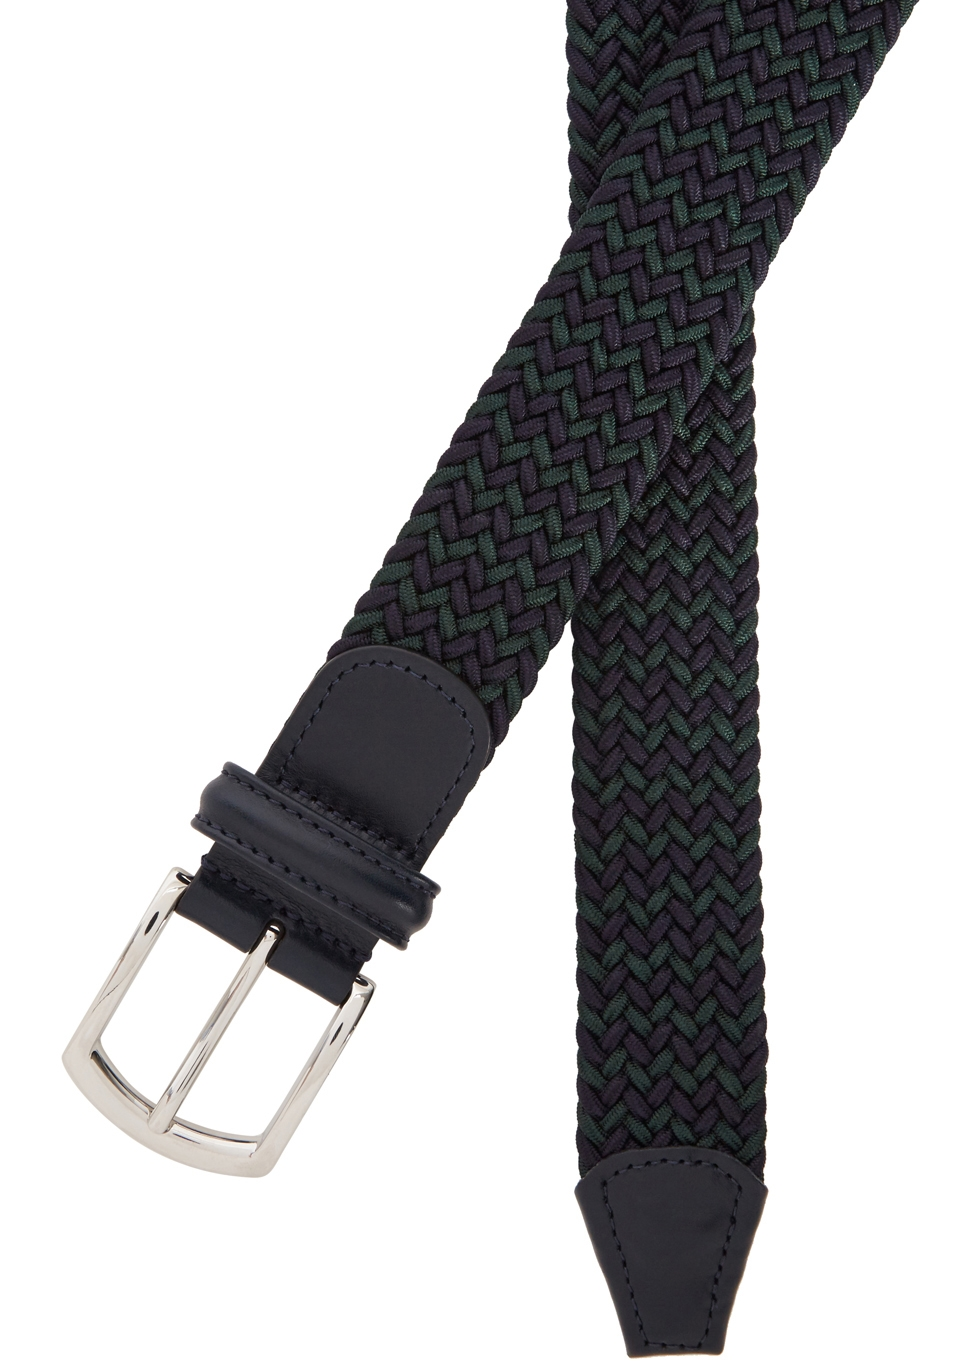 Woven canvas belt - Anderson's